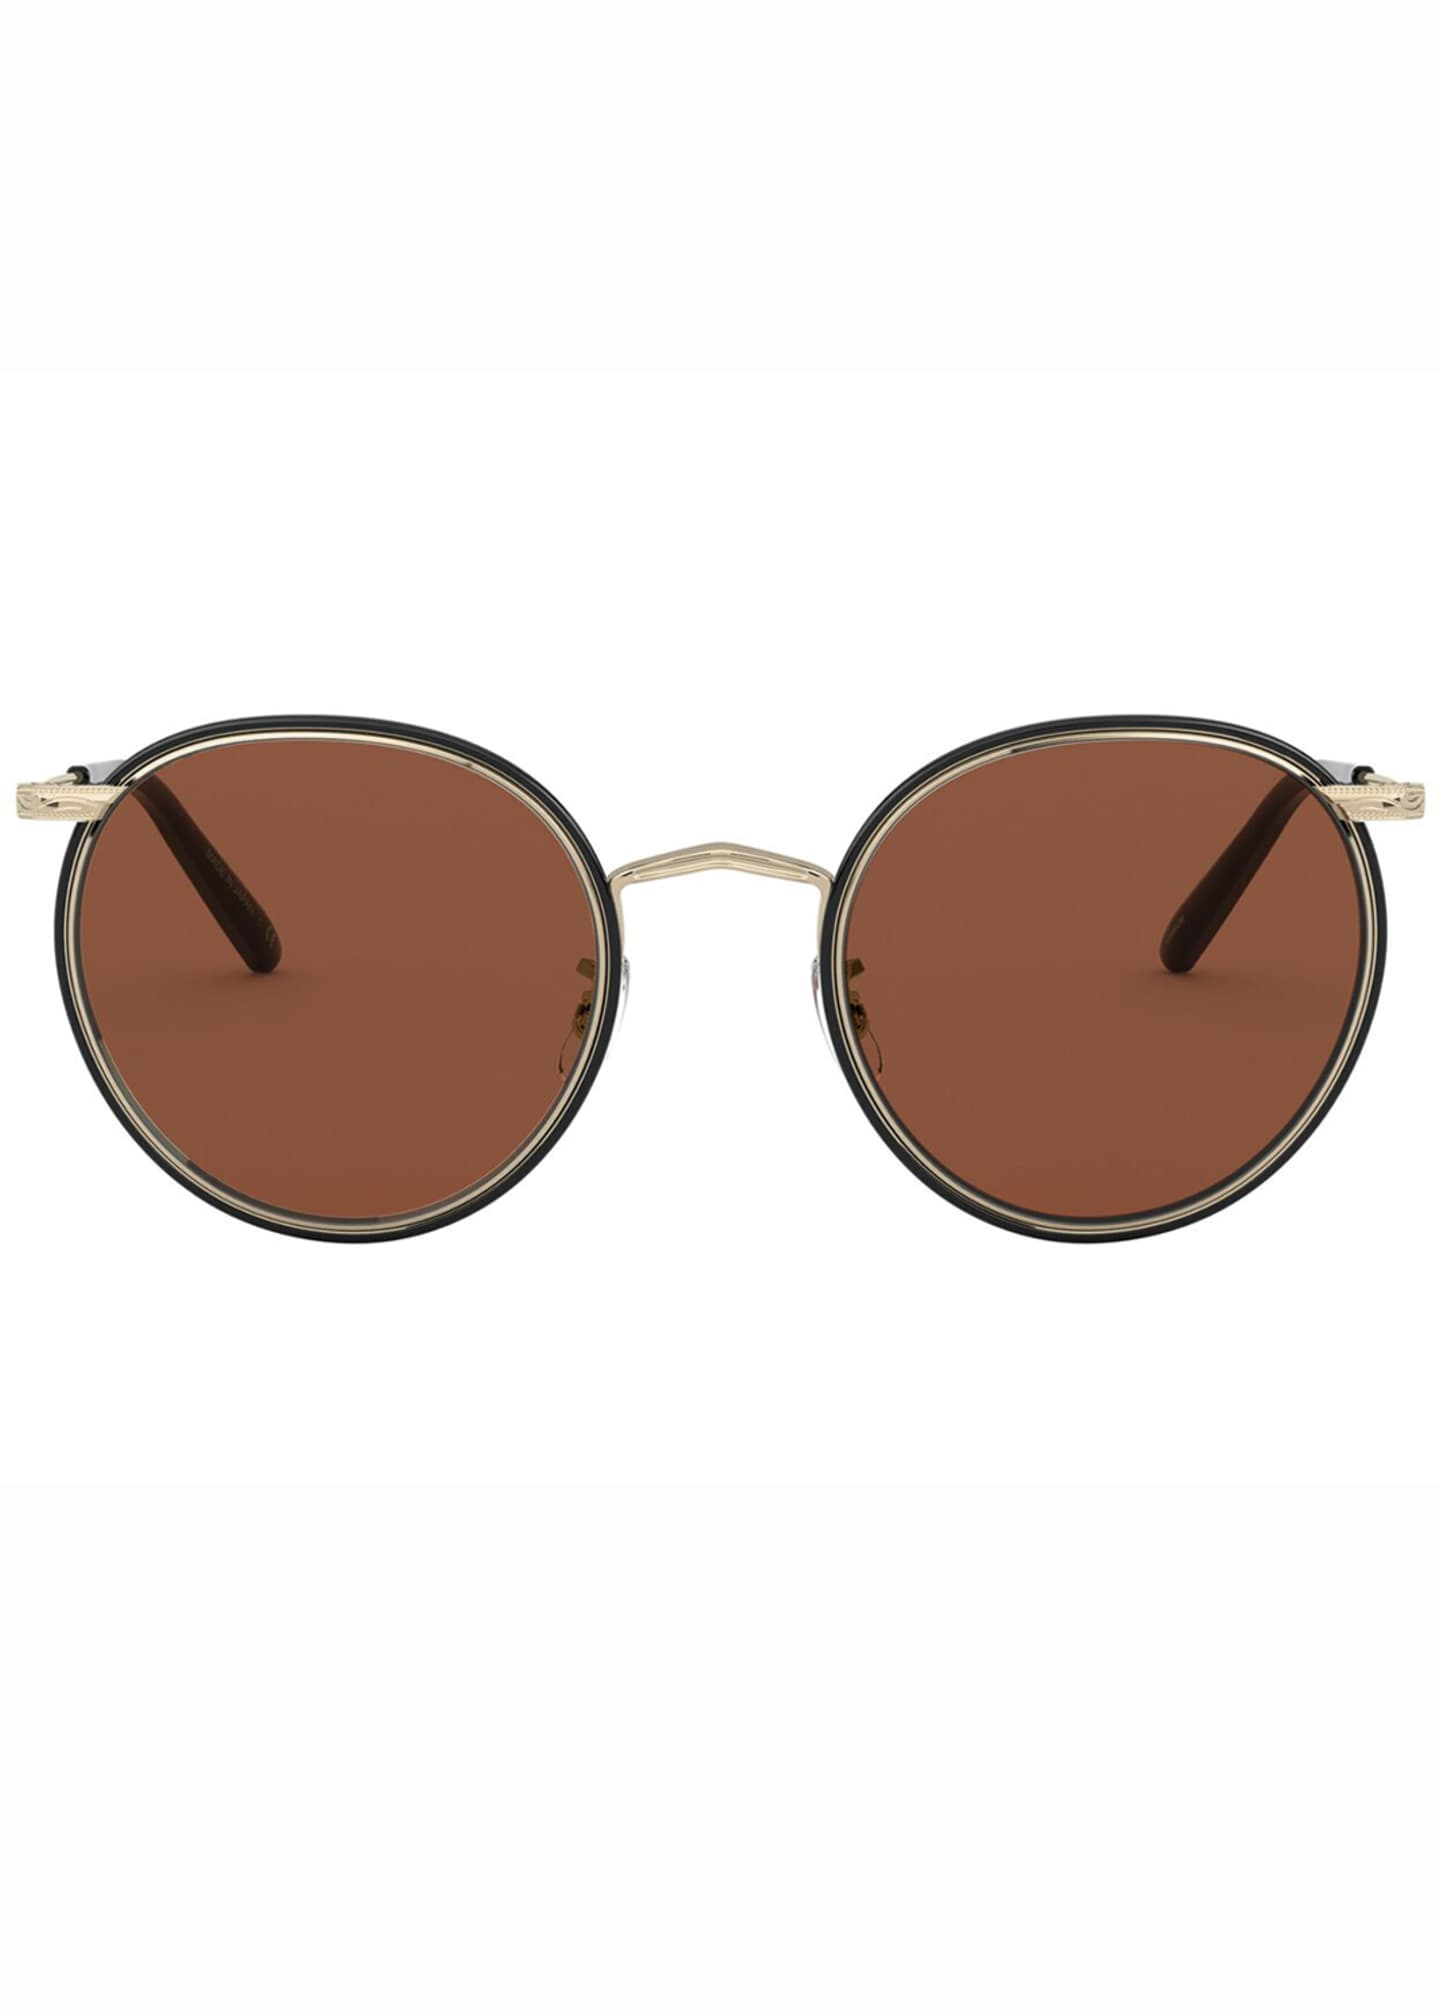 Image 2 of 2: Men's Casson Round Aviator Titanium Sunglasses